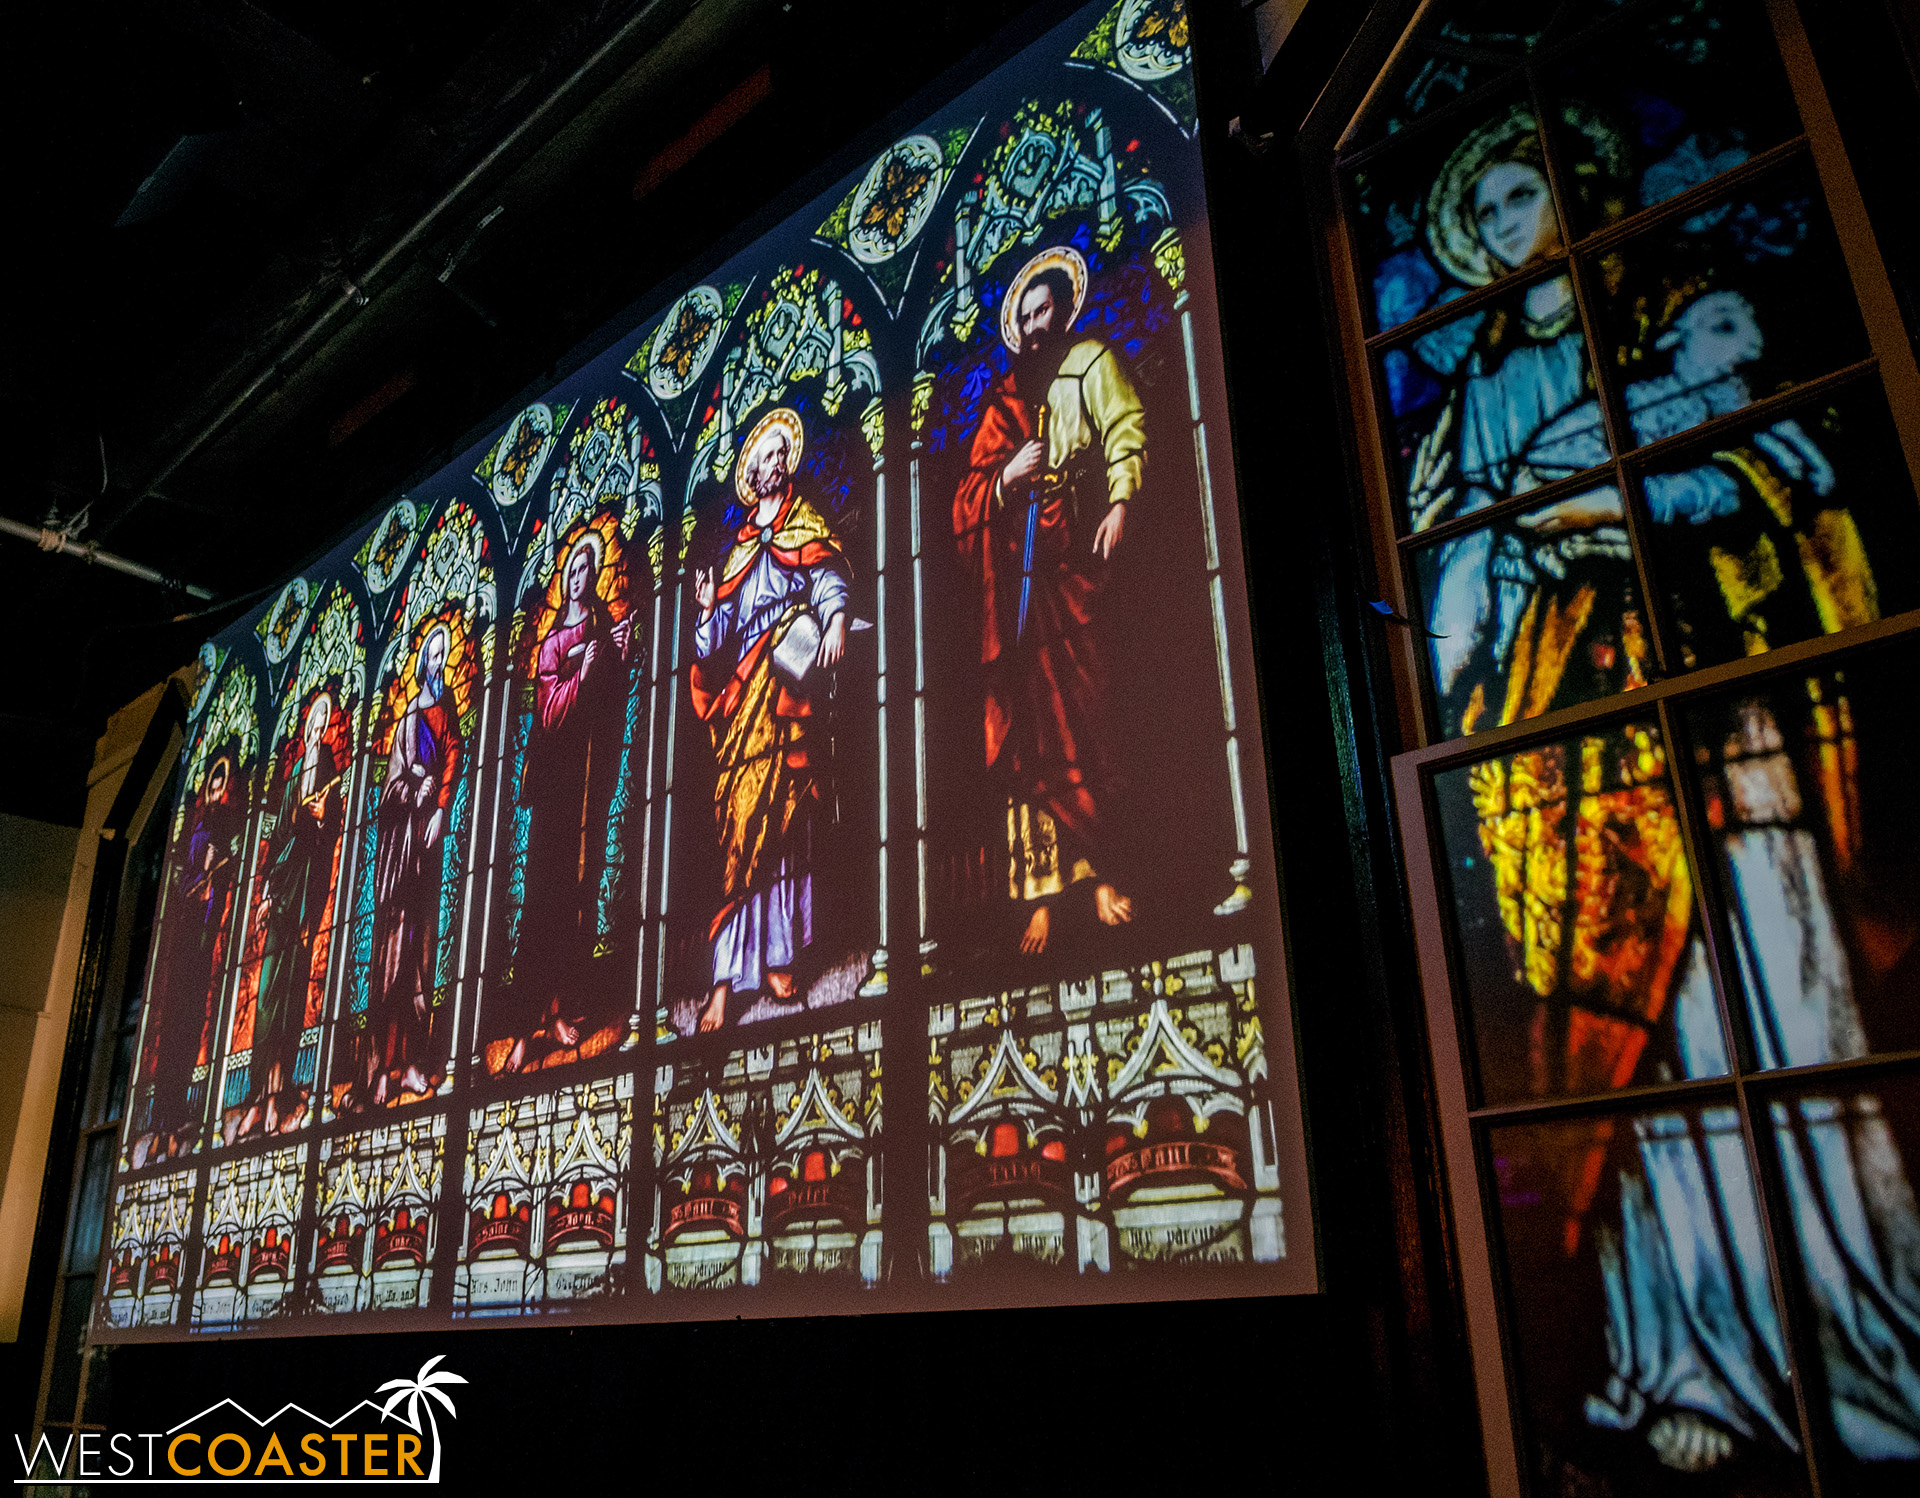 The stained glass becomes the cinema screen once the attraction begins.